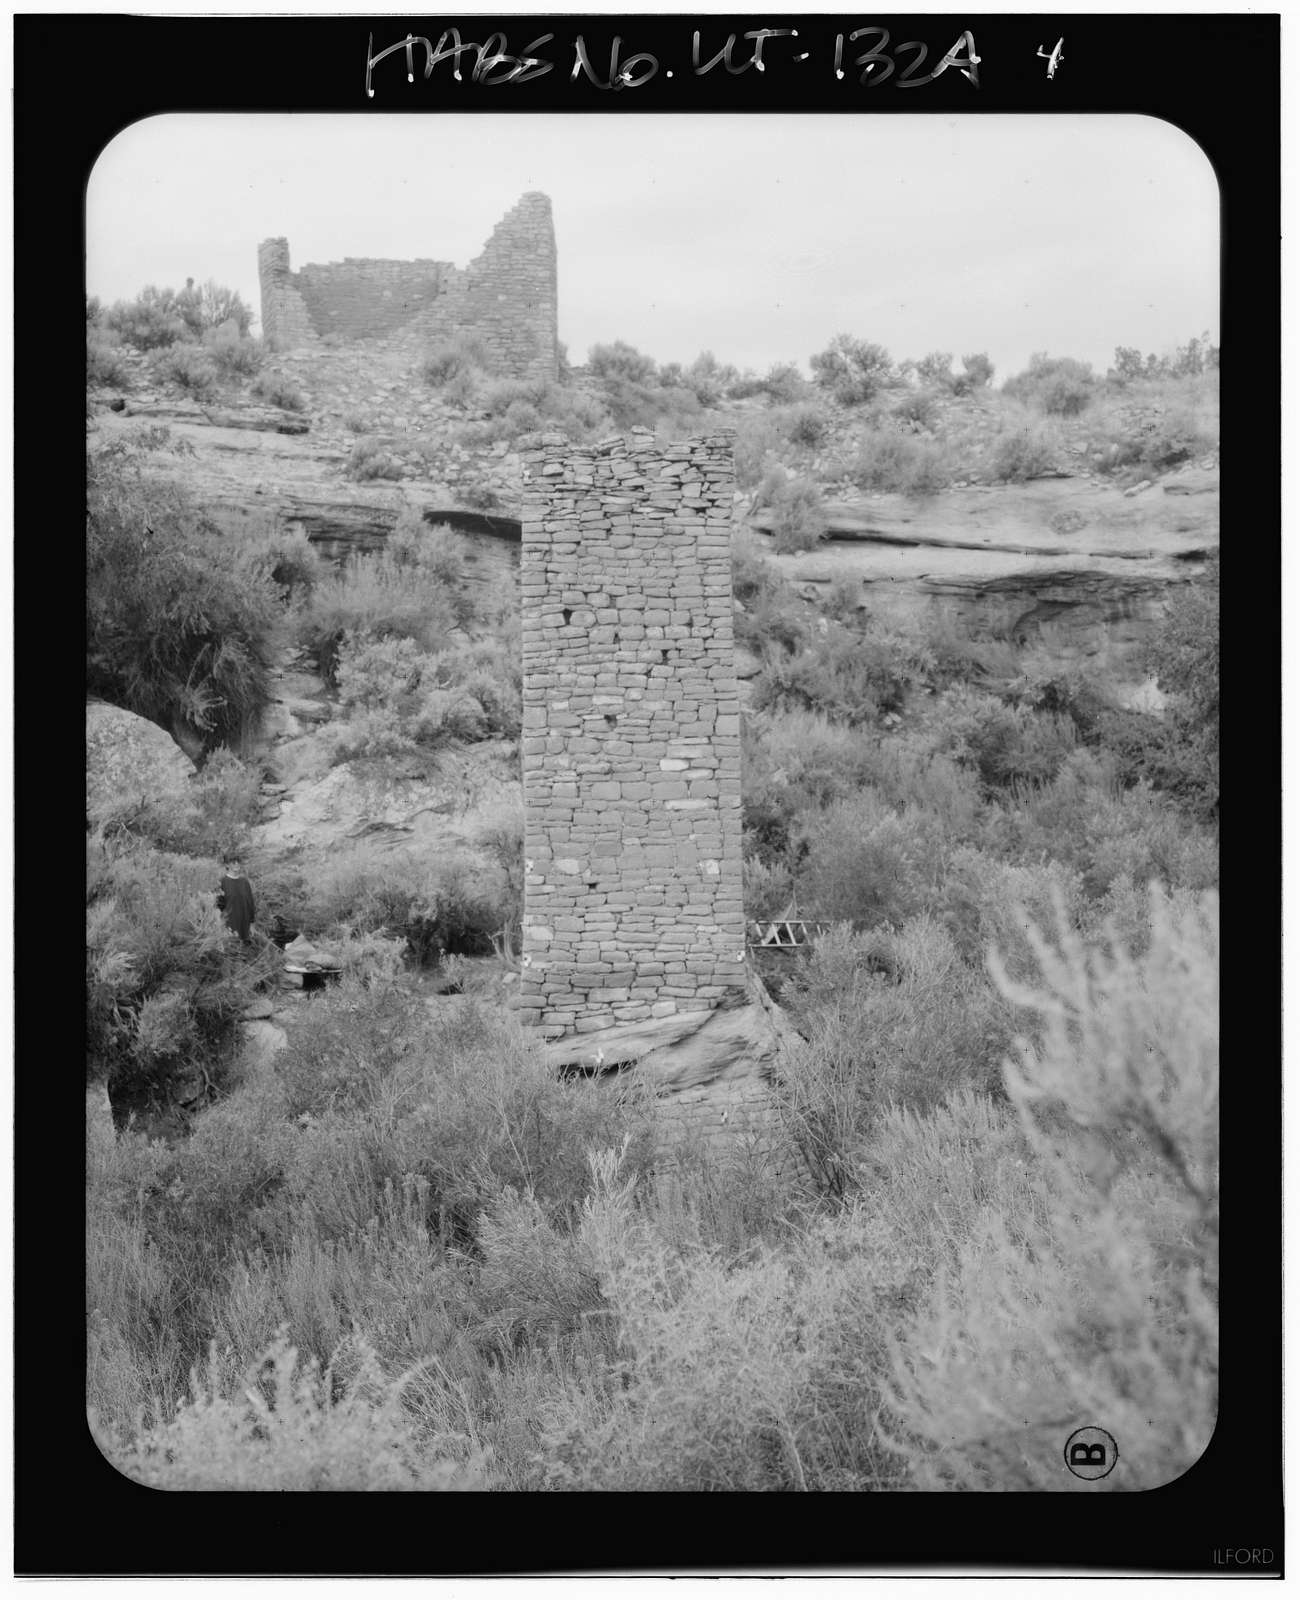 Square Tower Group, Square Tower, Near park headquarters, Aneth, San Juan County, UT